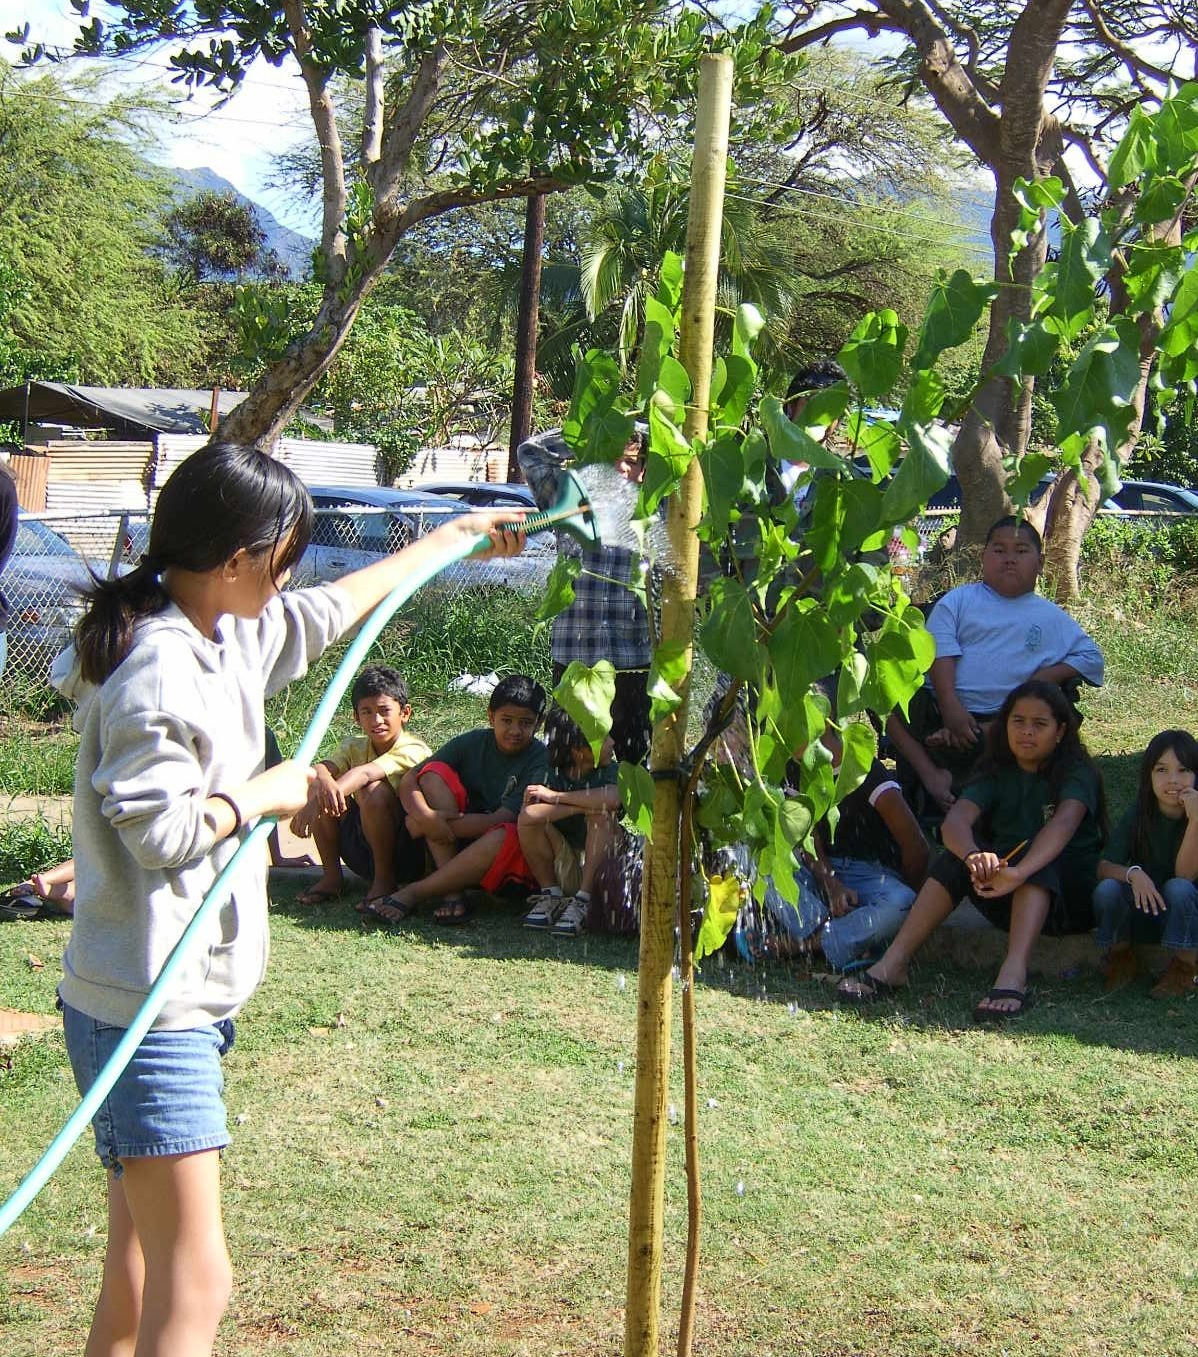 Girl watering a newly planted tree, group of children in background sitting, watching